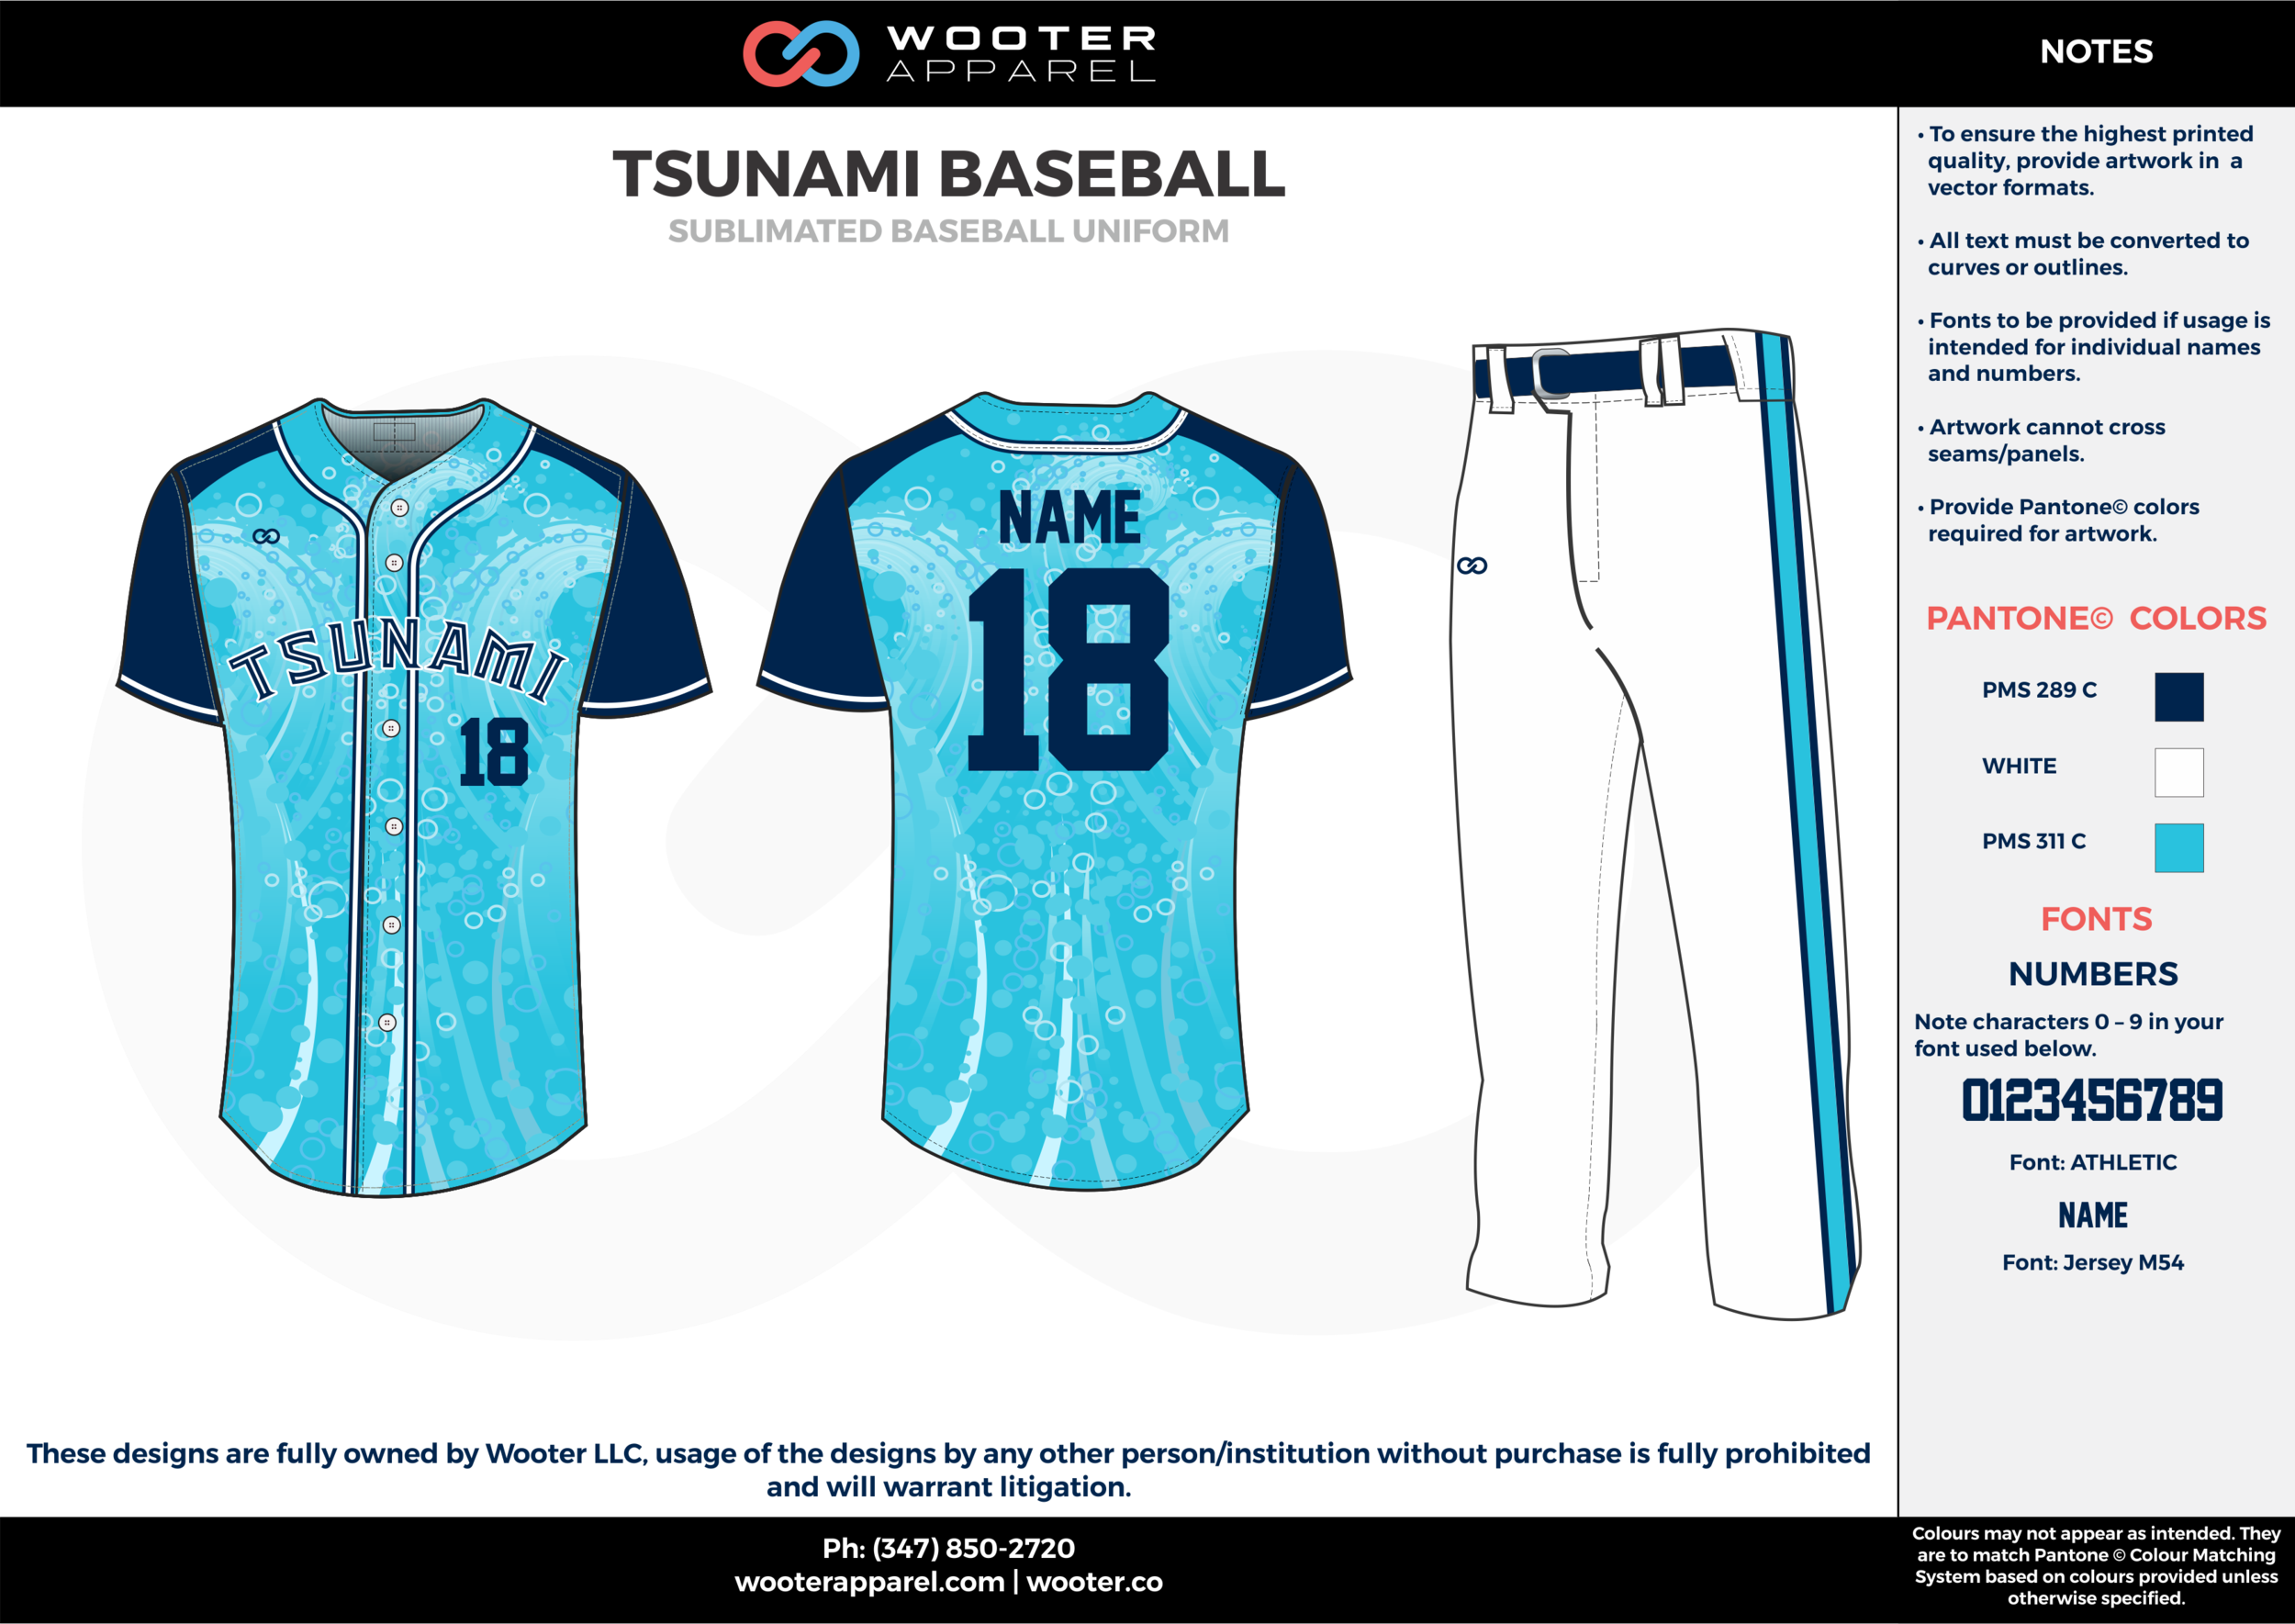 TSUNAMI BASEBALL light blue white dark blue baseball uniforms jerseys pants